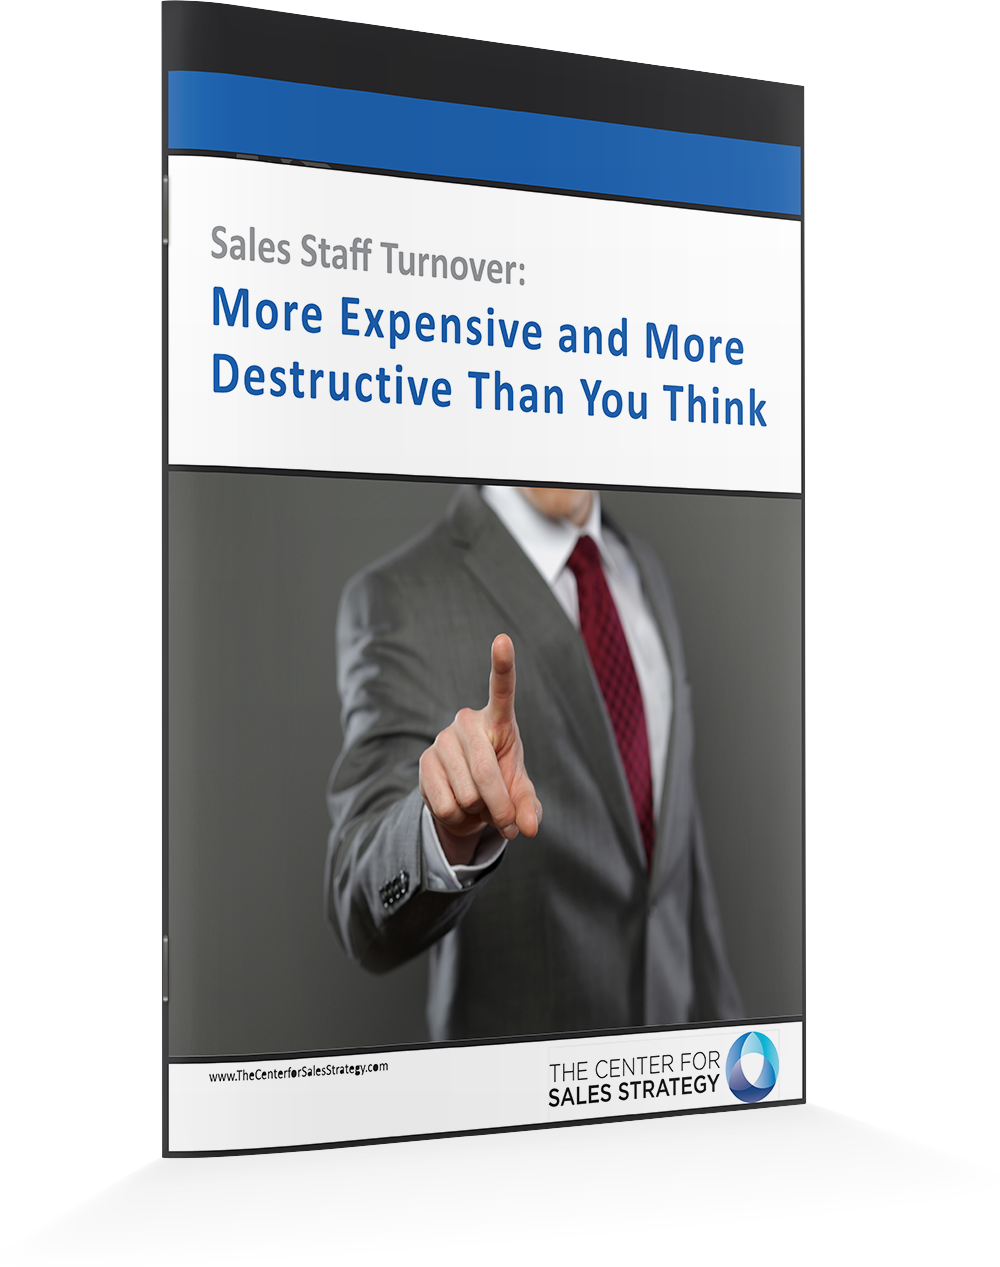 sales_staff_turnover